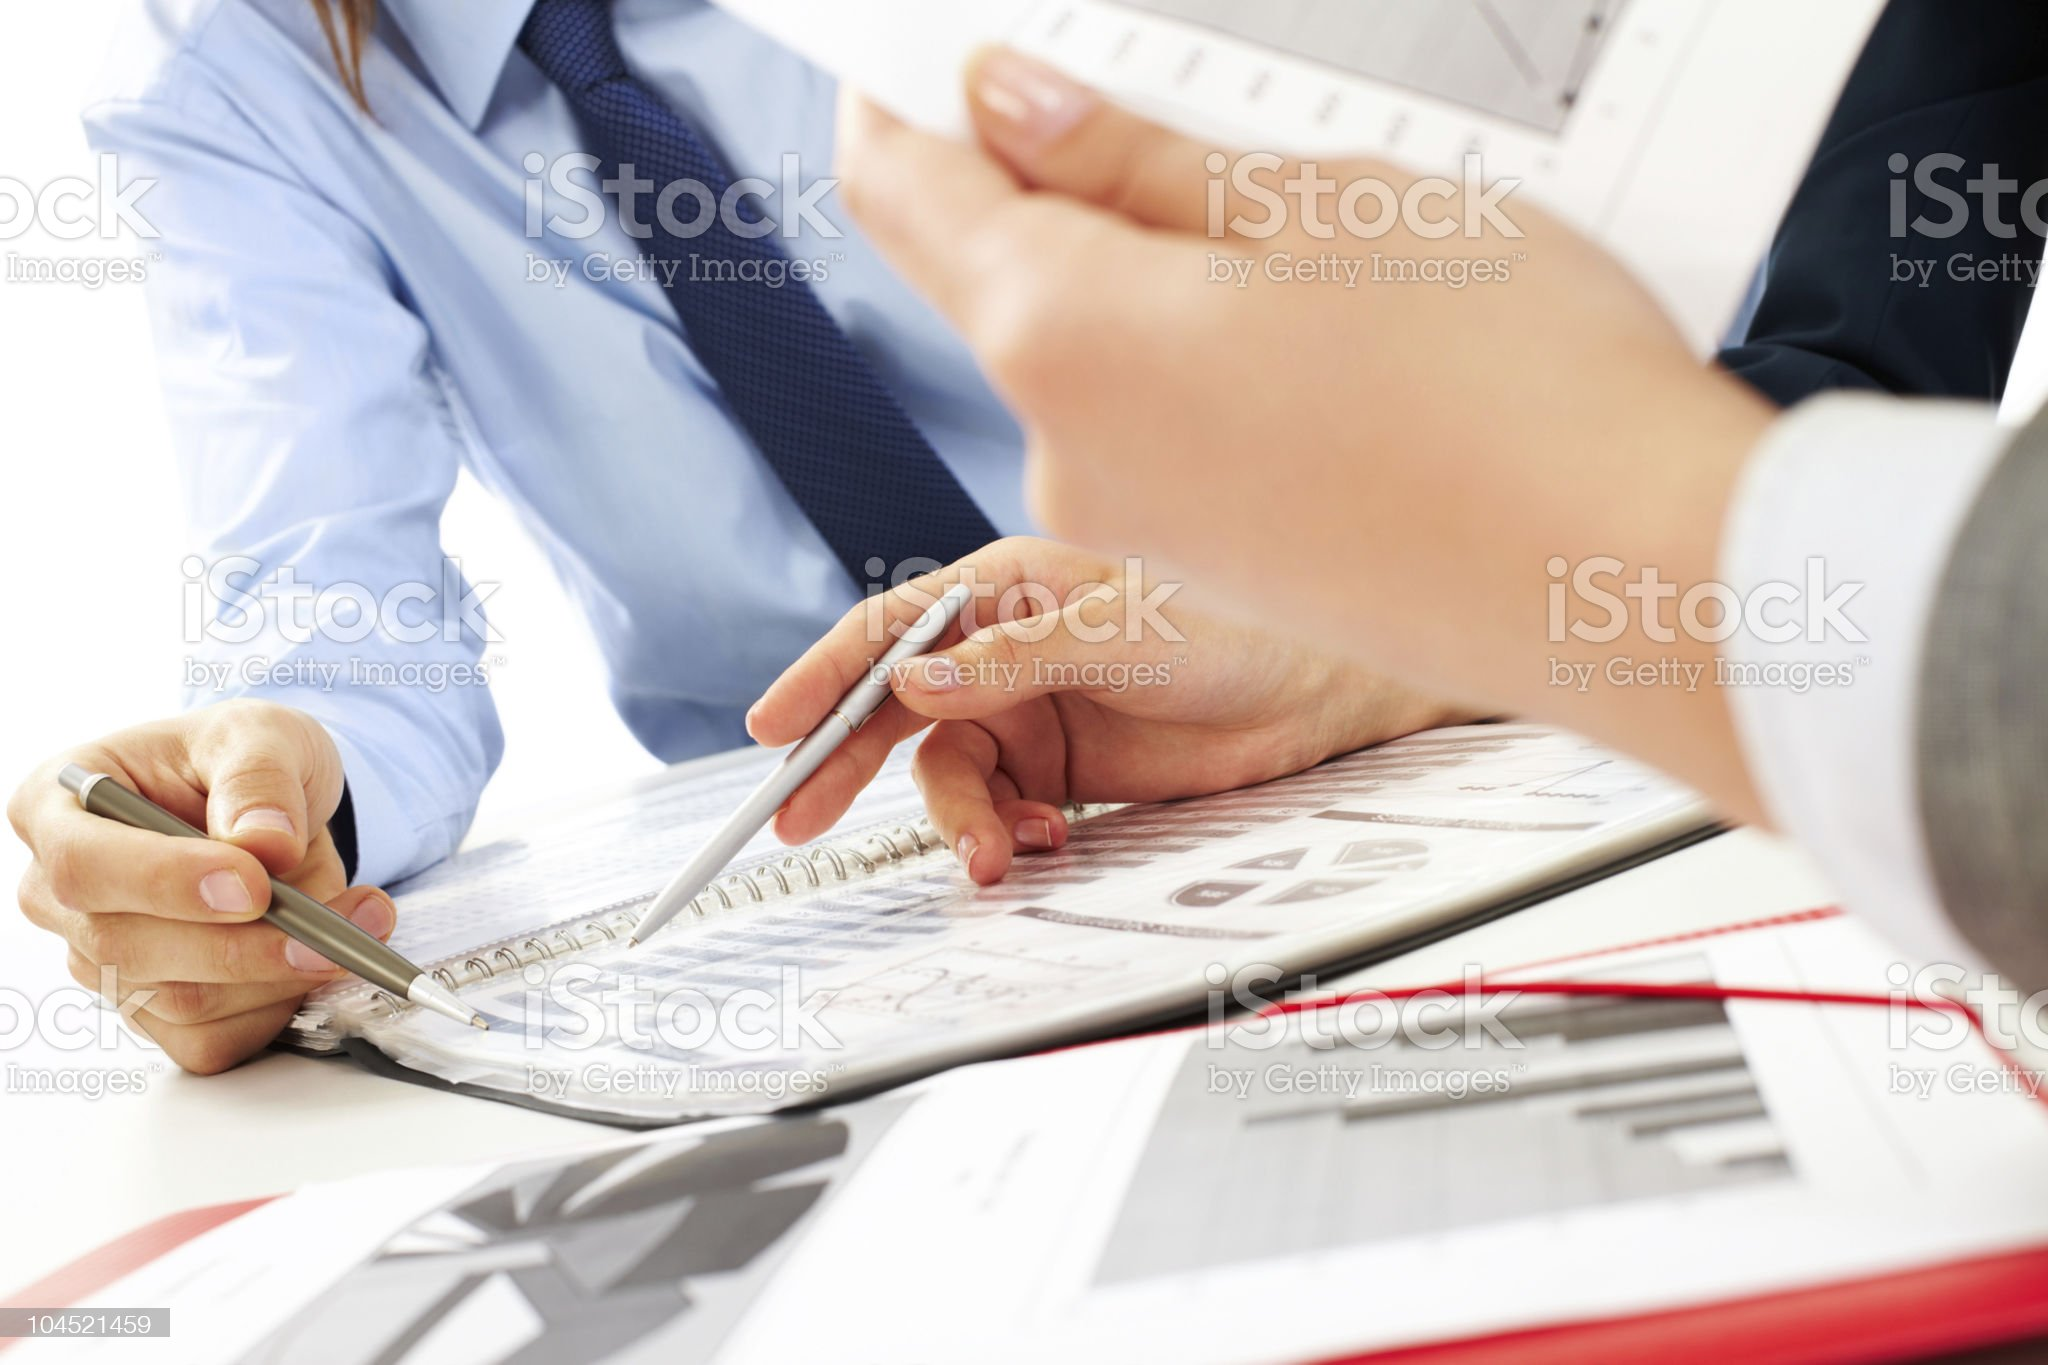 Hands with pens over business papers royalty-free stock photo